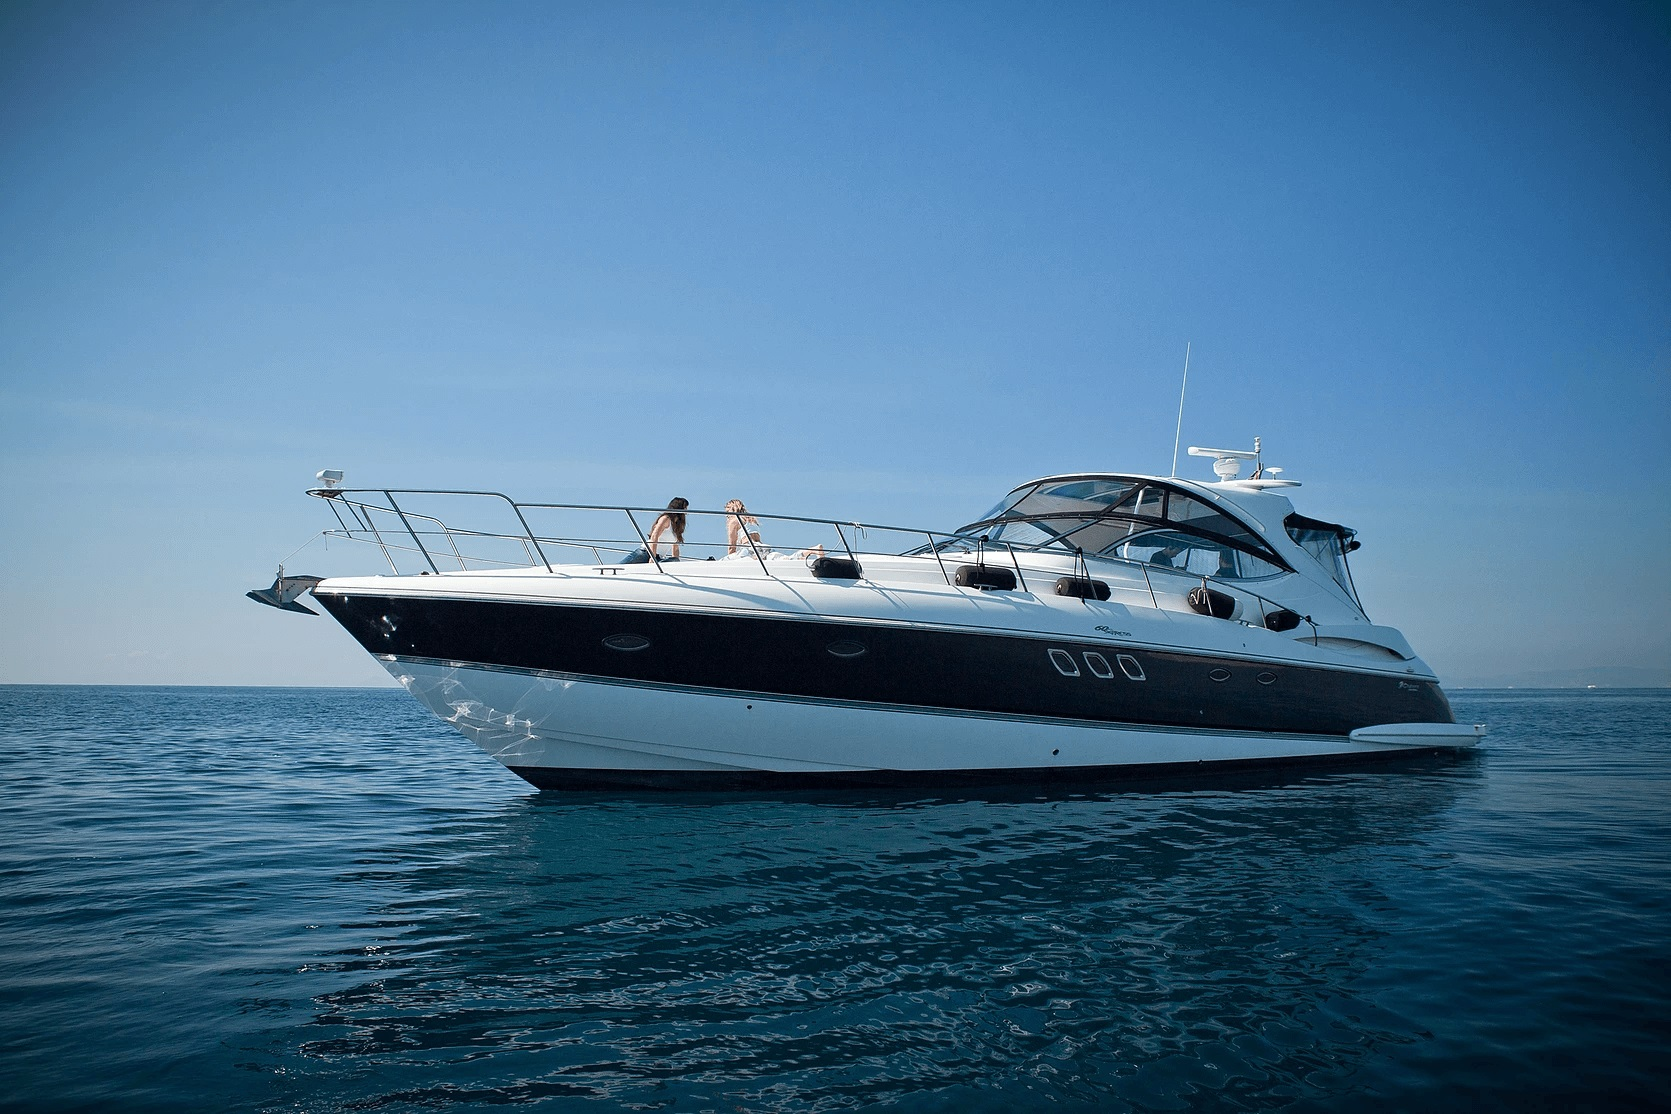 Victoria S - Motor Yacht for Charter in Greece